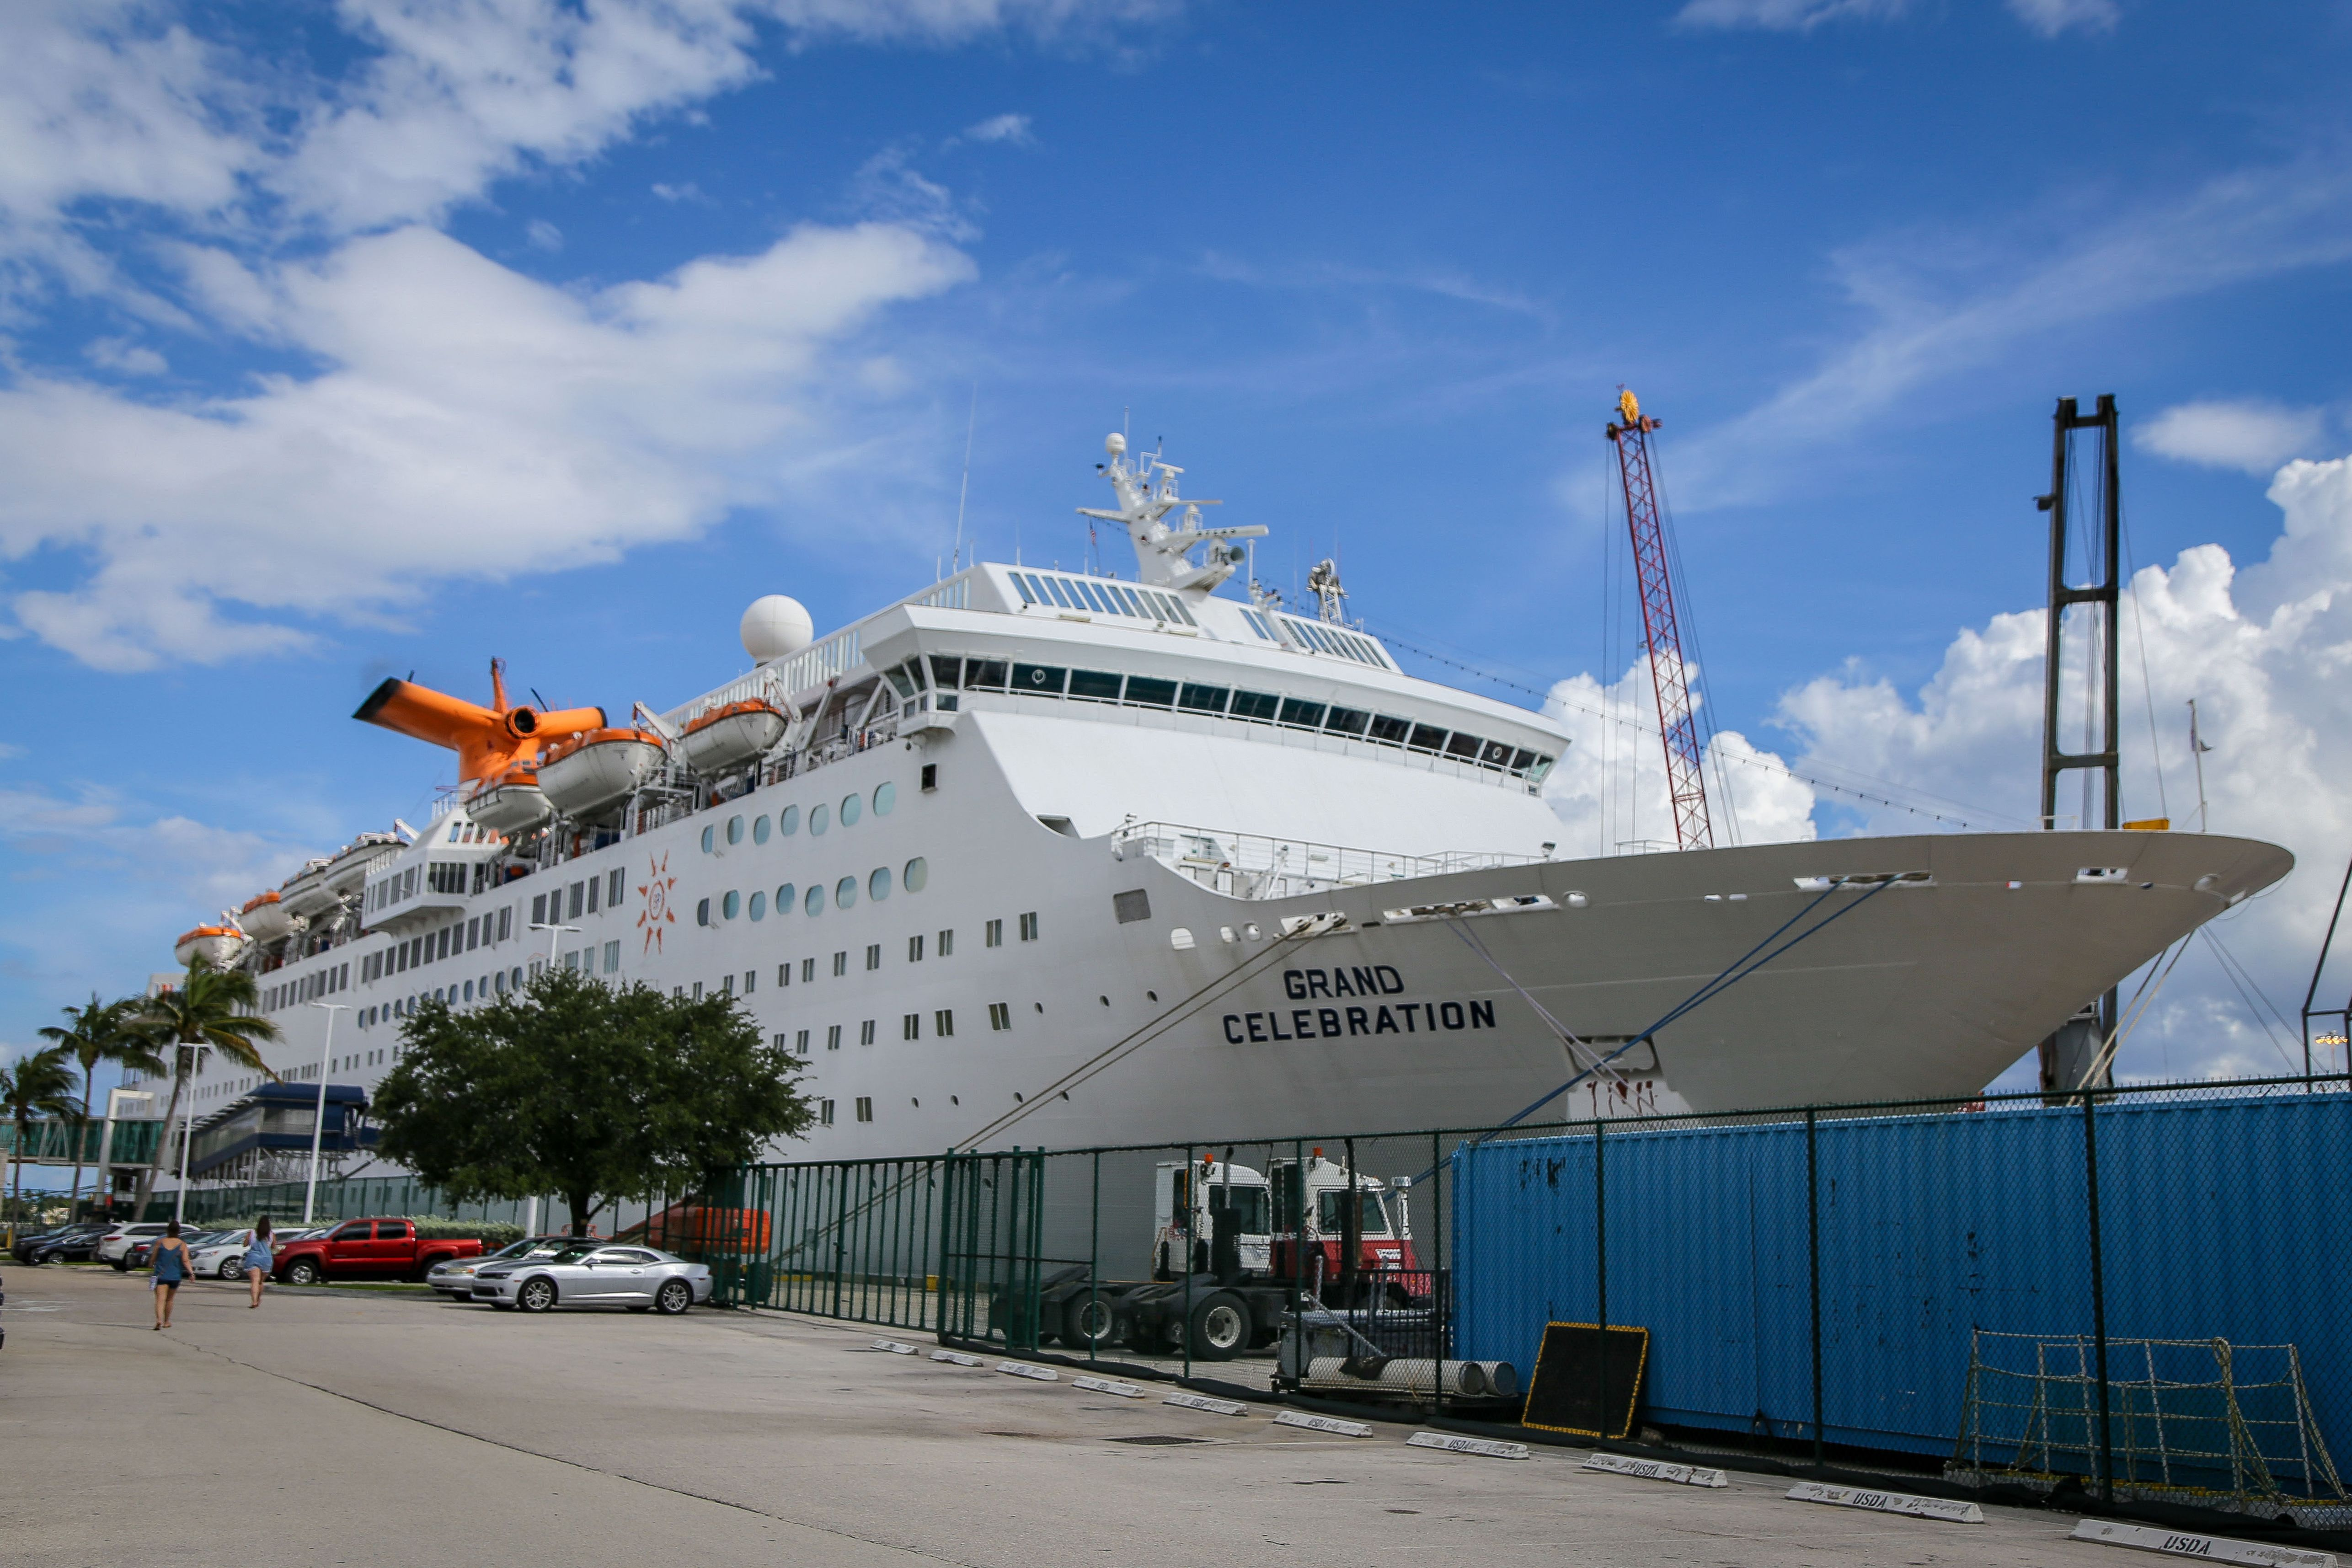 The Bahamas Paradise Cruise Line's Grand Celebration is pictured on Sept. 16, 2019 in West Palm Beach, Florida, carrying volunteers and aid to the Bahamas.